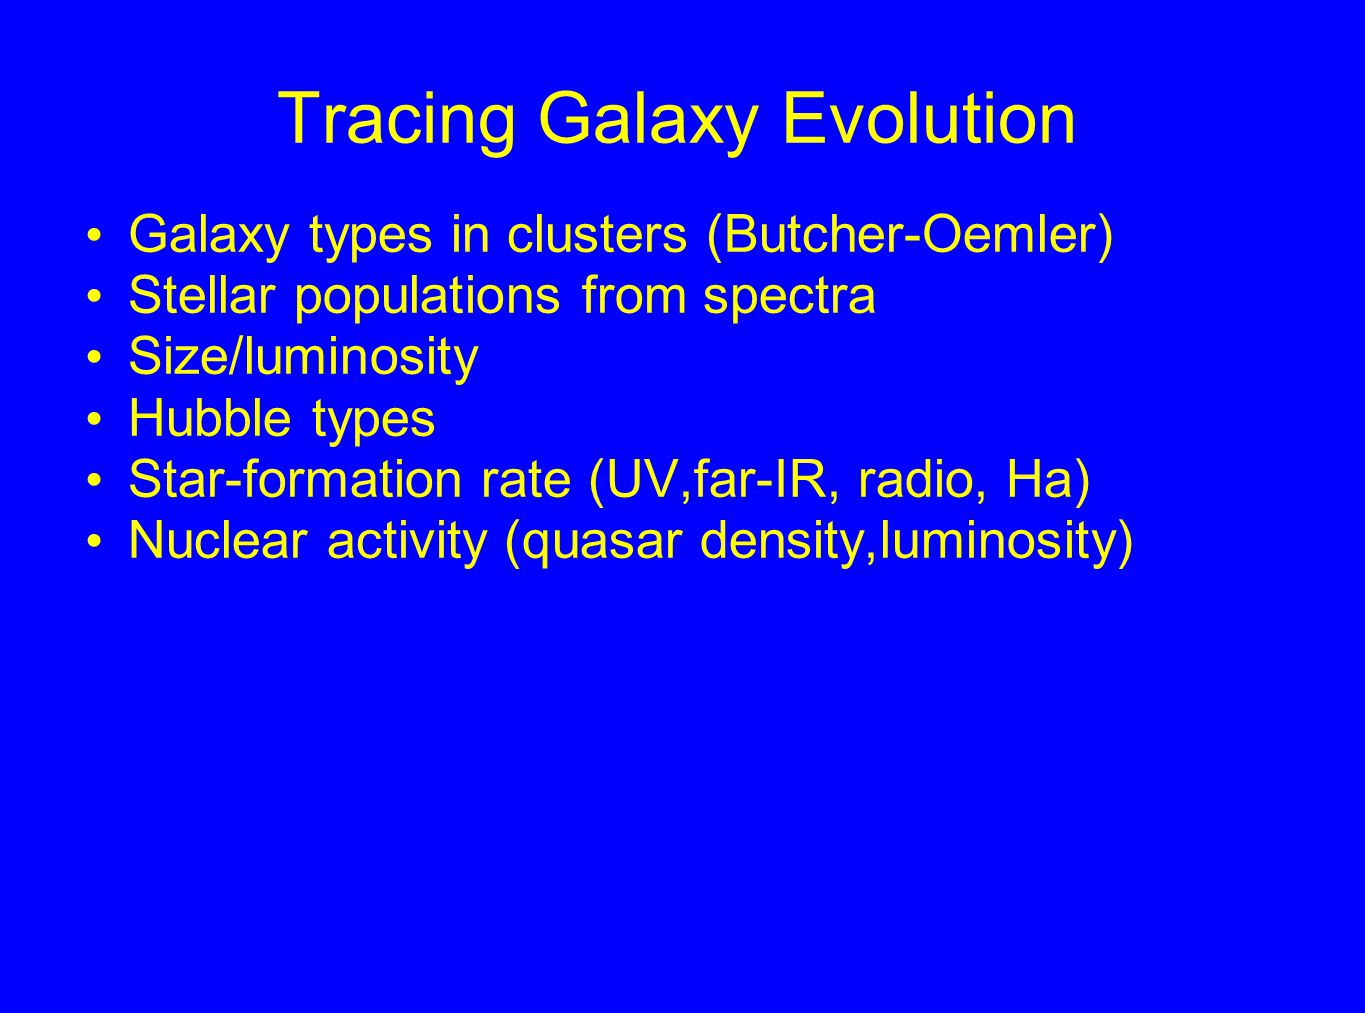 The early galaxy bestiary Lyman-break galaxies Extremely red objects (EROs) - the oldest young galaxies and dusty environments Star-forming subgalactic objects Submillimeter galaxies Quasars and radio galaxies Absorption-line systems These often occur in combination (groupings)